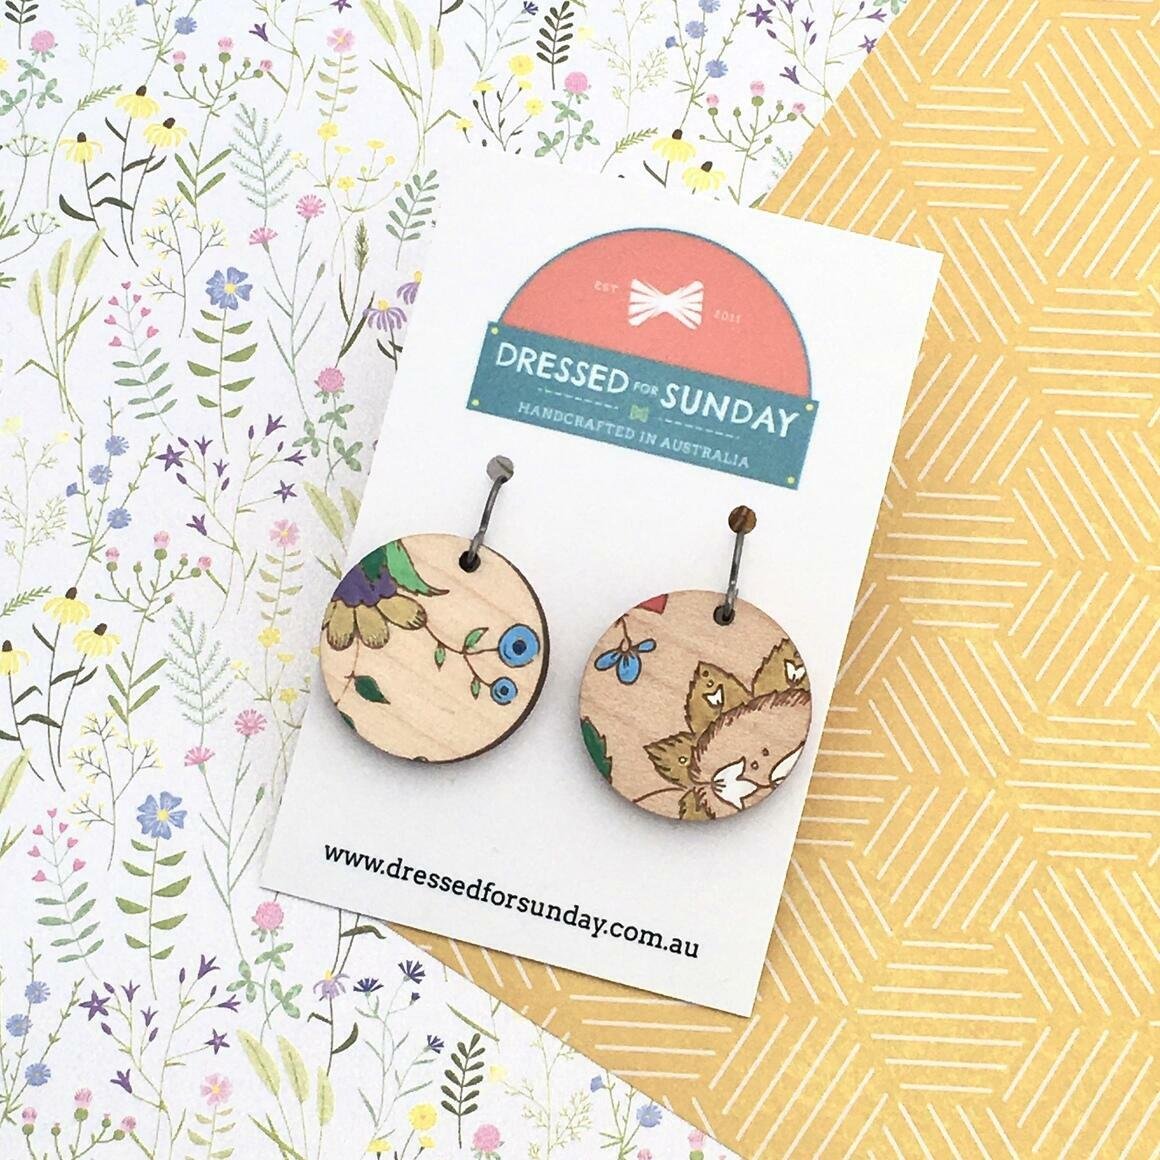 French Wallpaper Round Earrings   Trada Marketplace